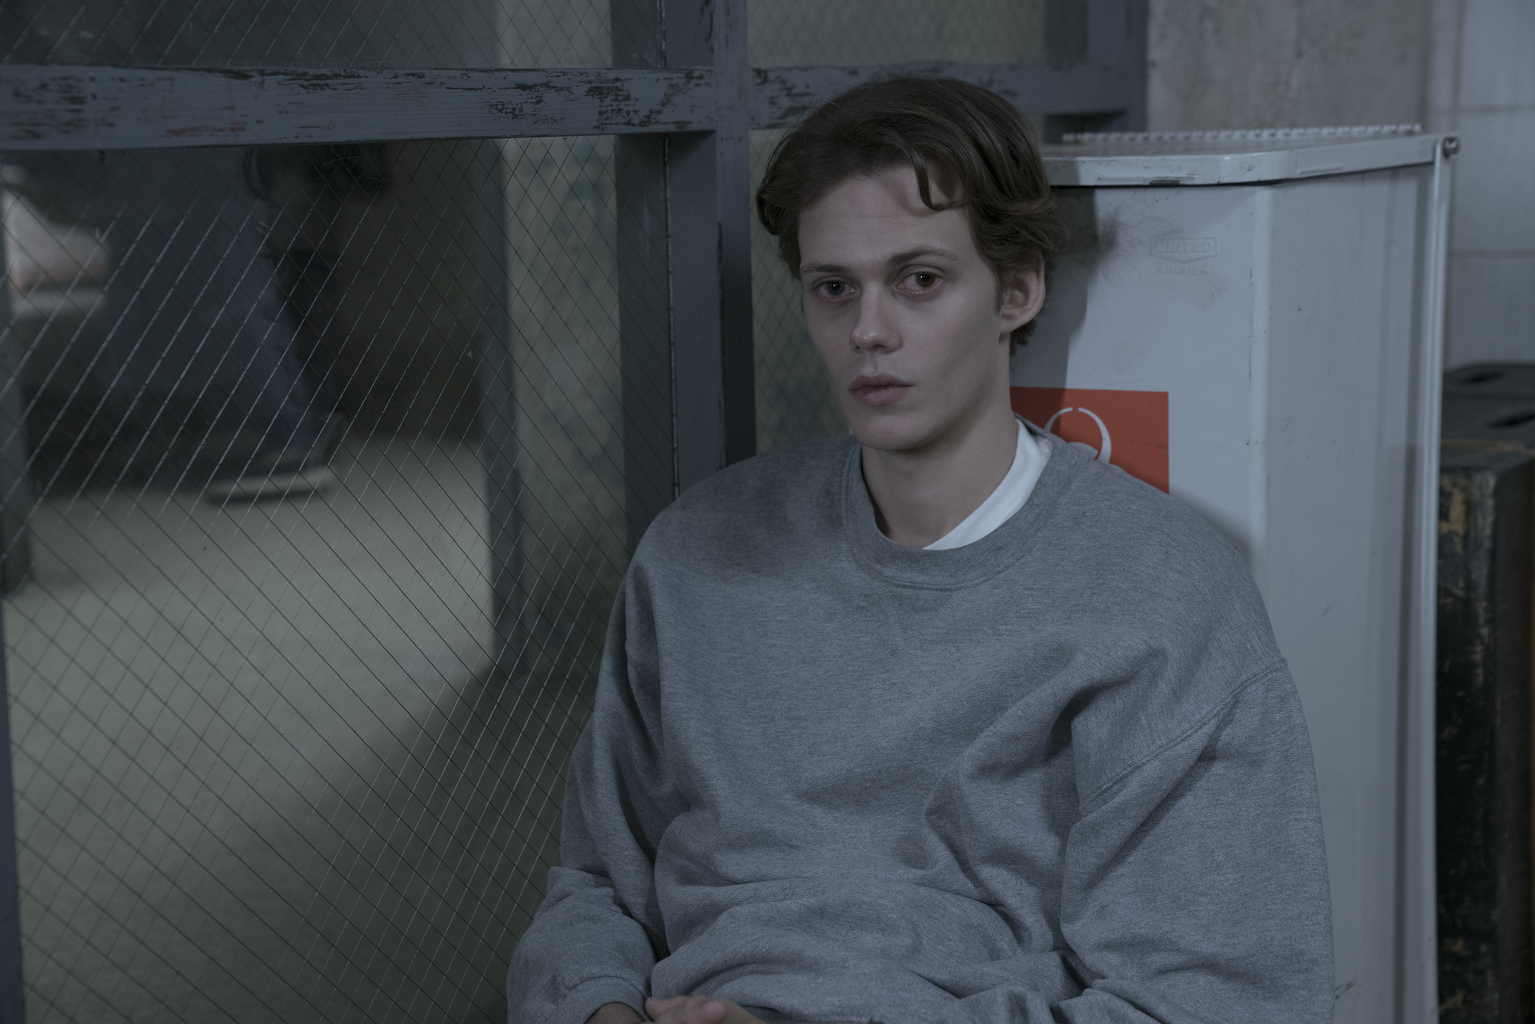 castle rock who is the kid in the cage in shawshank s cell block f